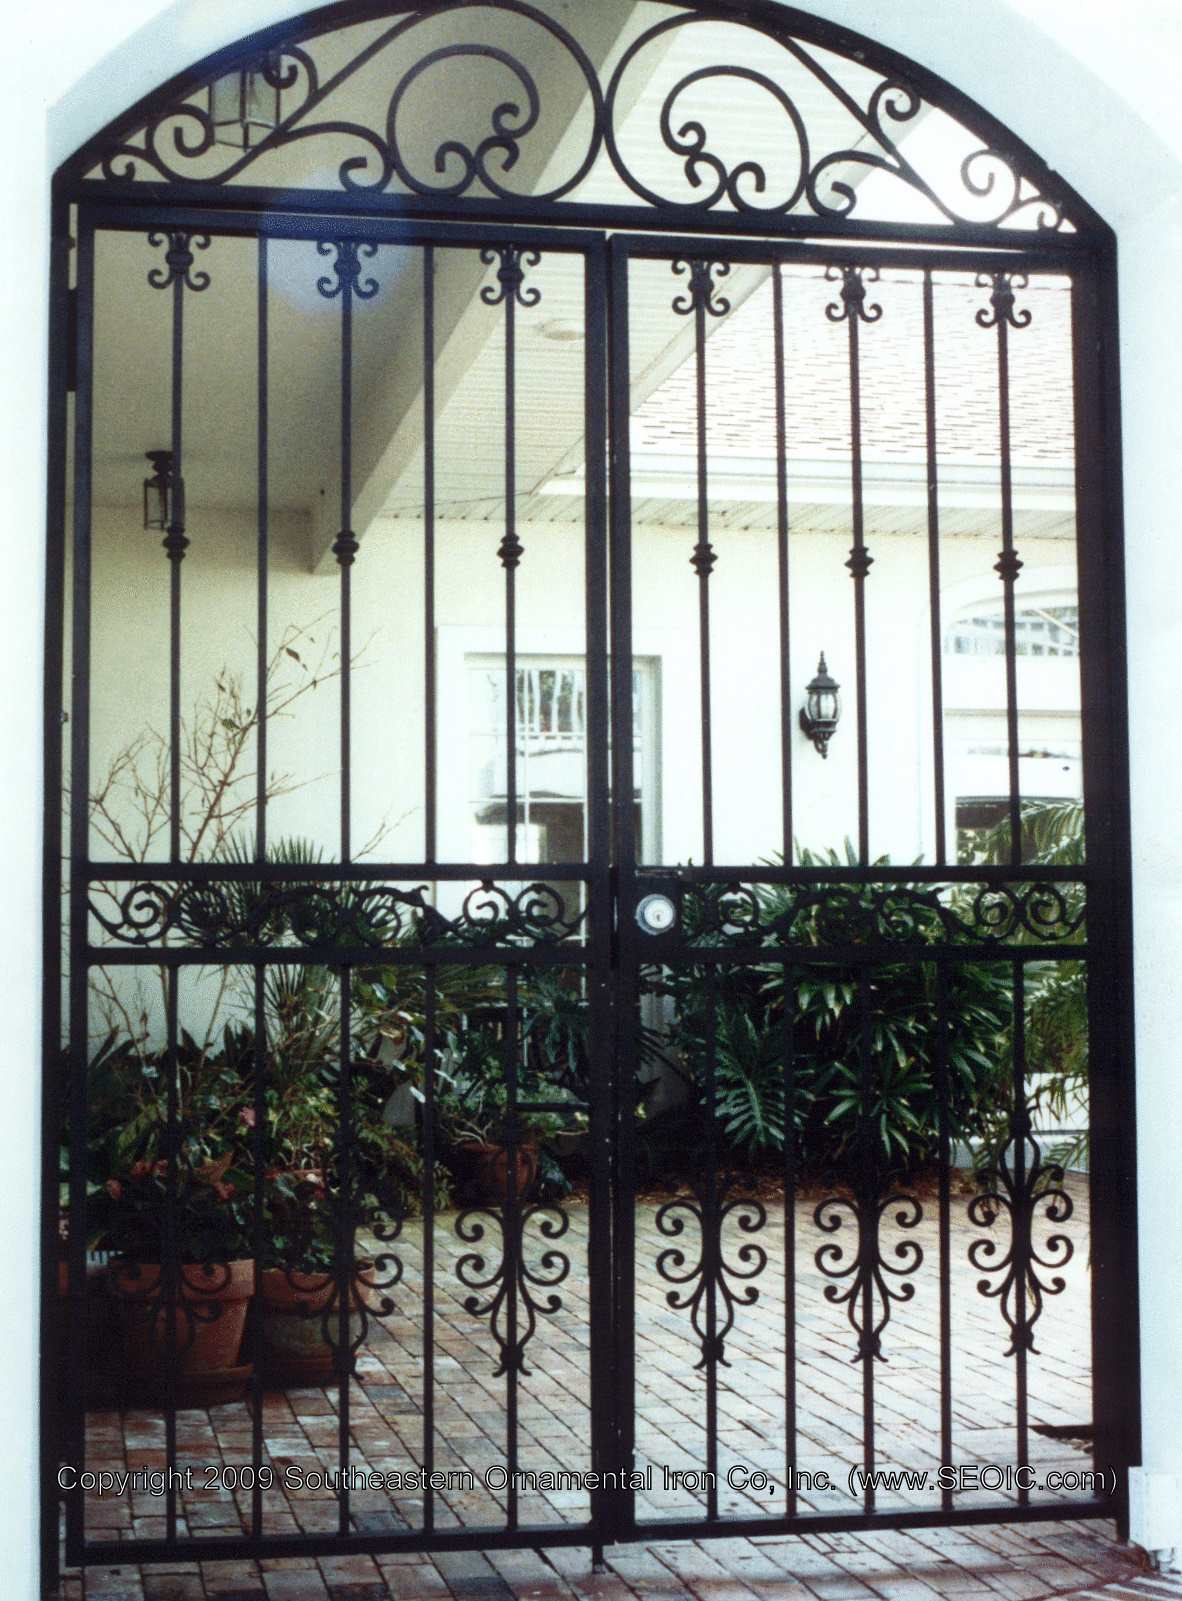 Wrought Iron Gates: Walk Gates, Garden Gates, Courtyard Gates, Security Gates